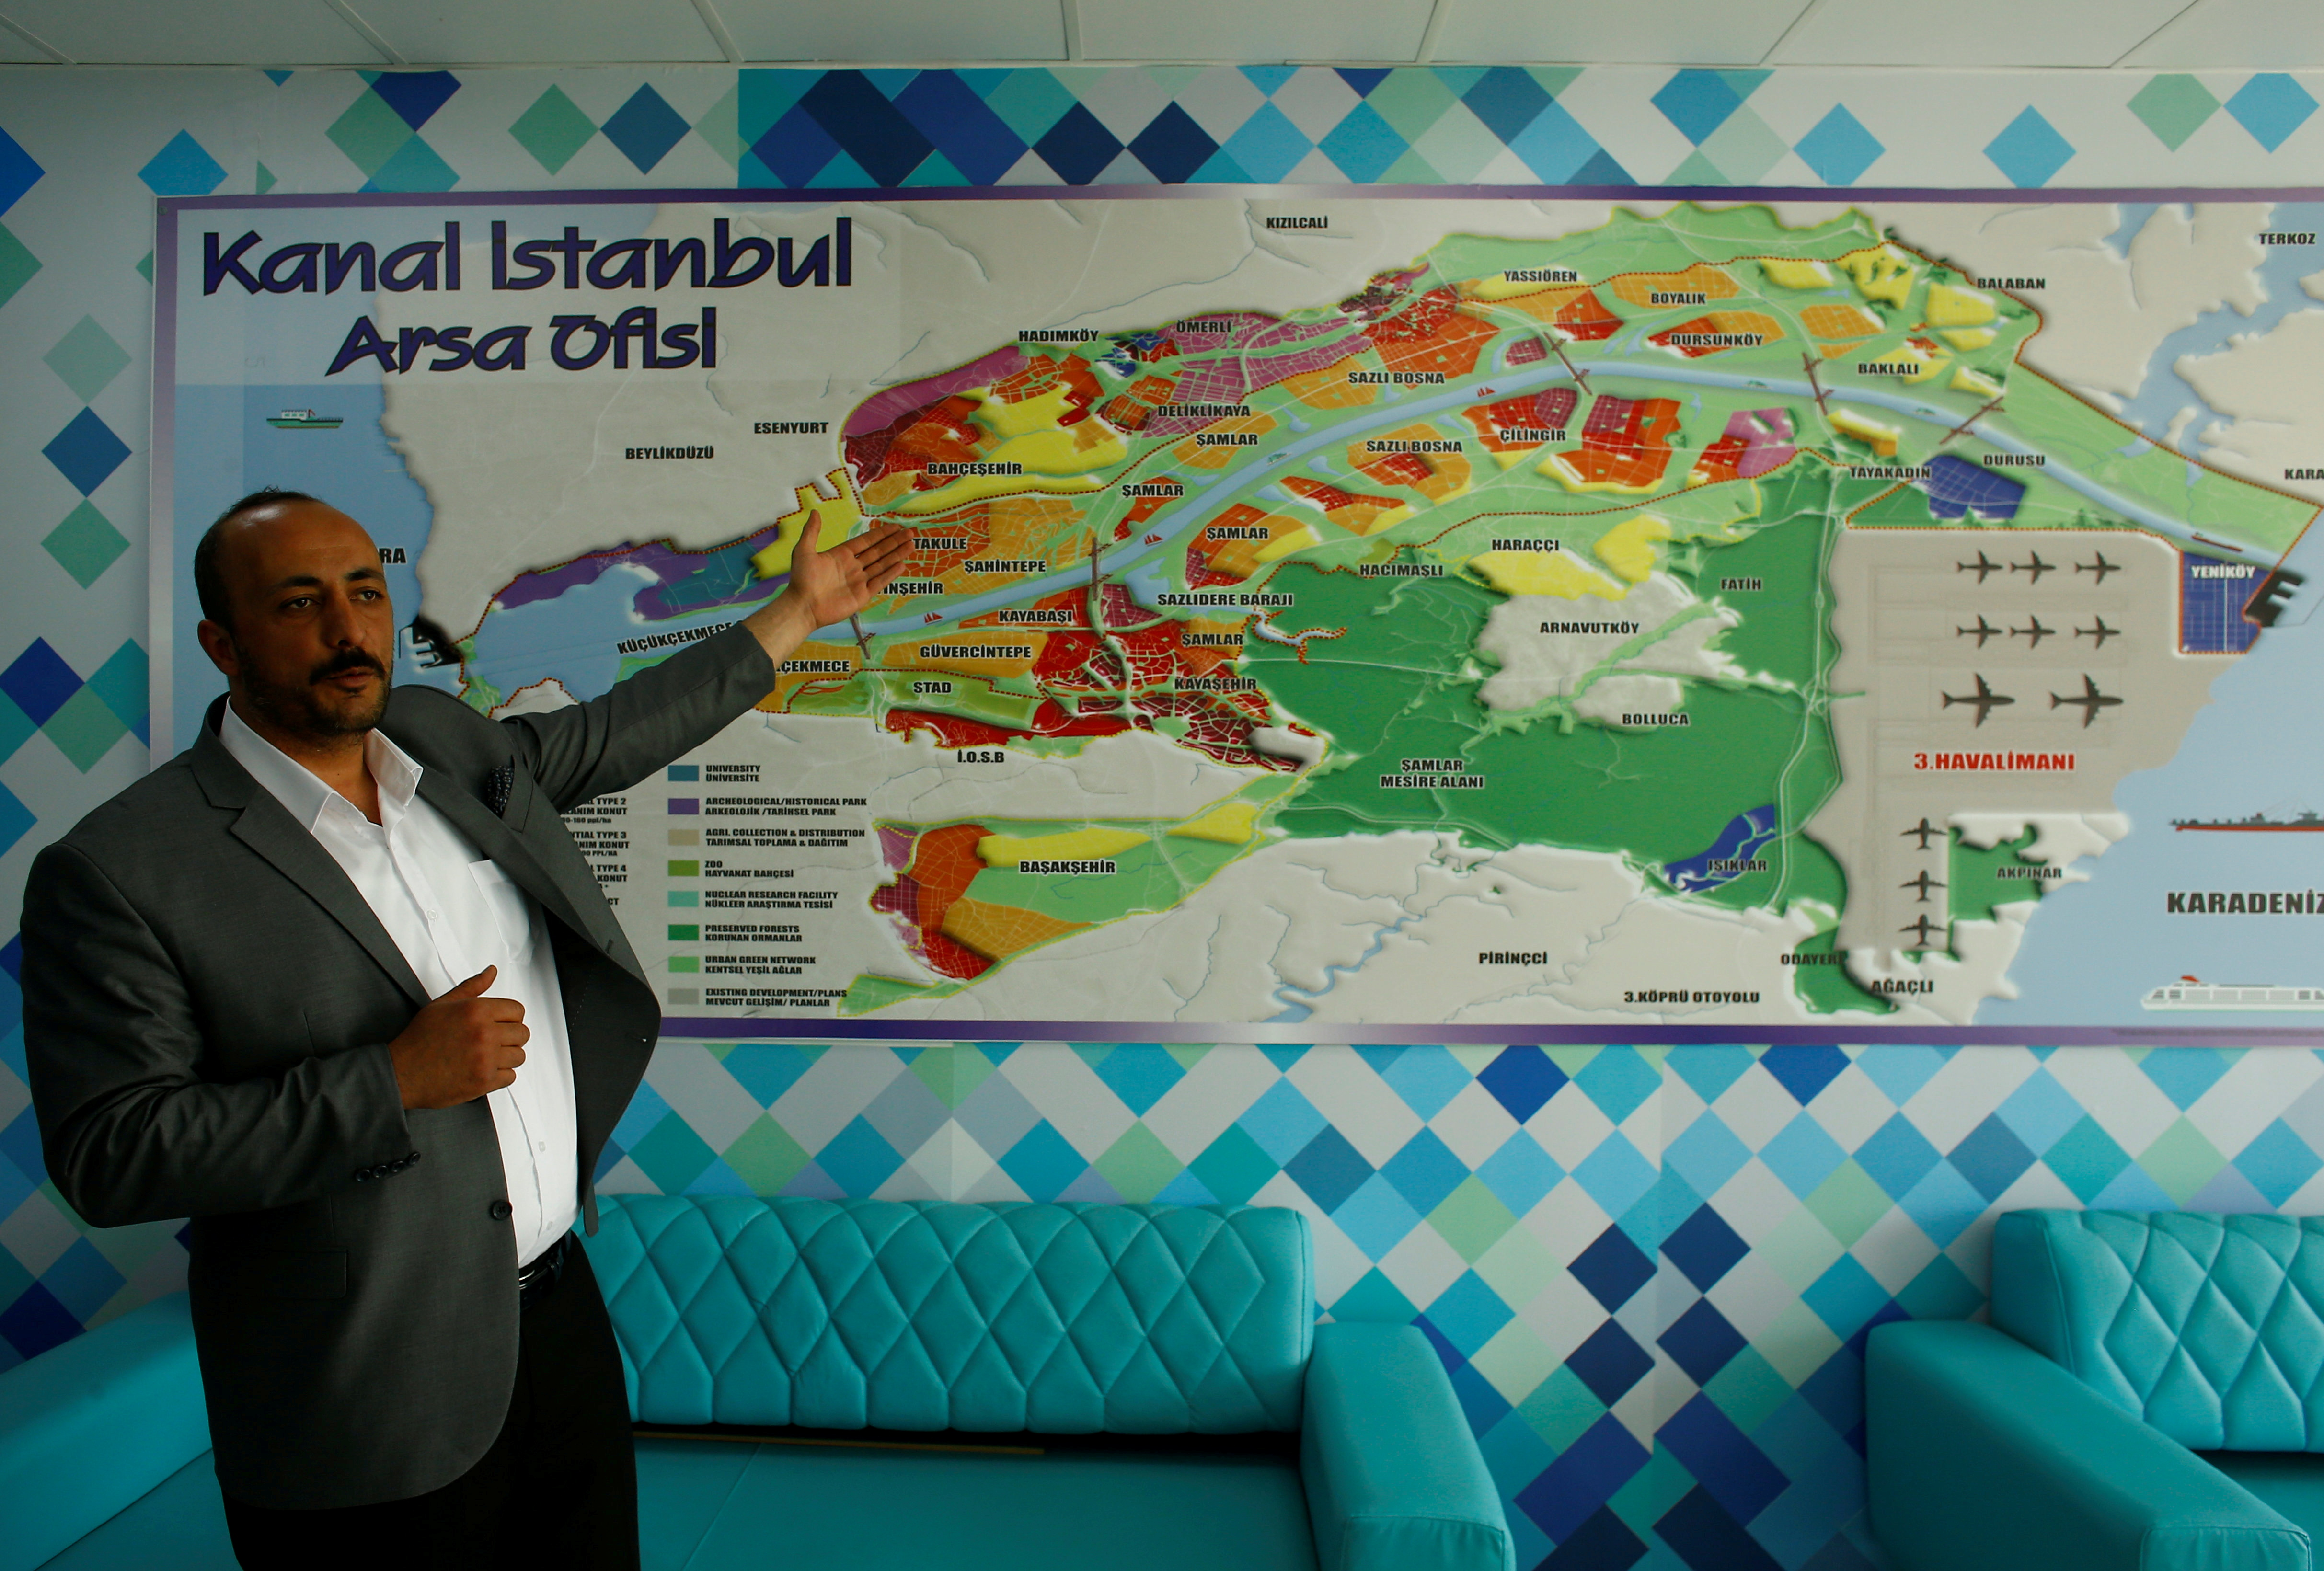 Real estate agent Murat Ozcelik talks during an interview with Reuters at his office in Kayabasi district in Istanbul, Turkey, April 16, 2018. REUTERS/Osman Orsal/File Photo